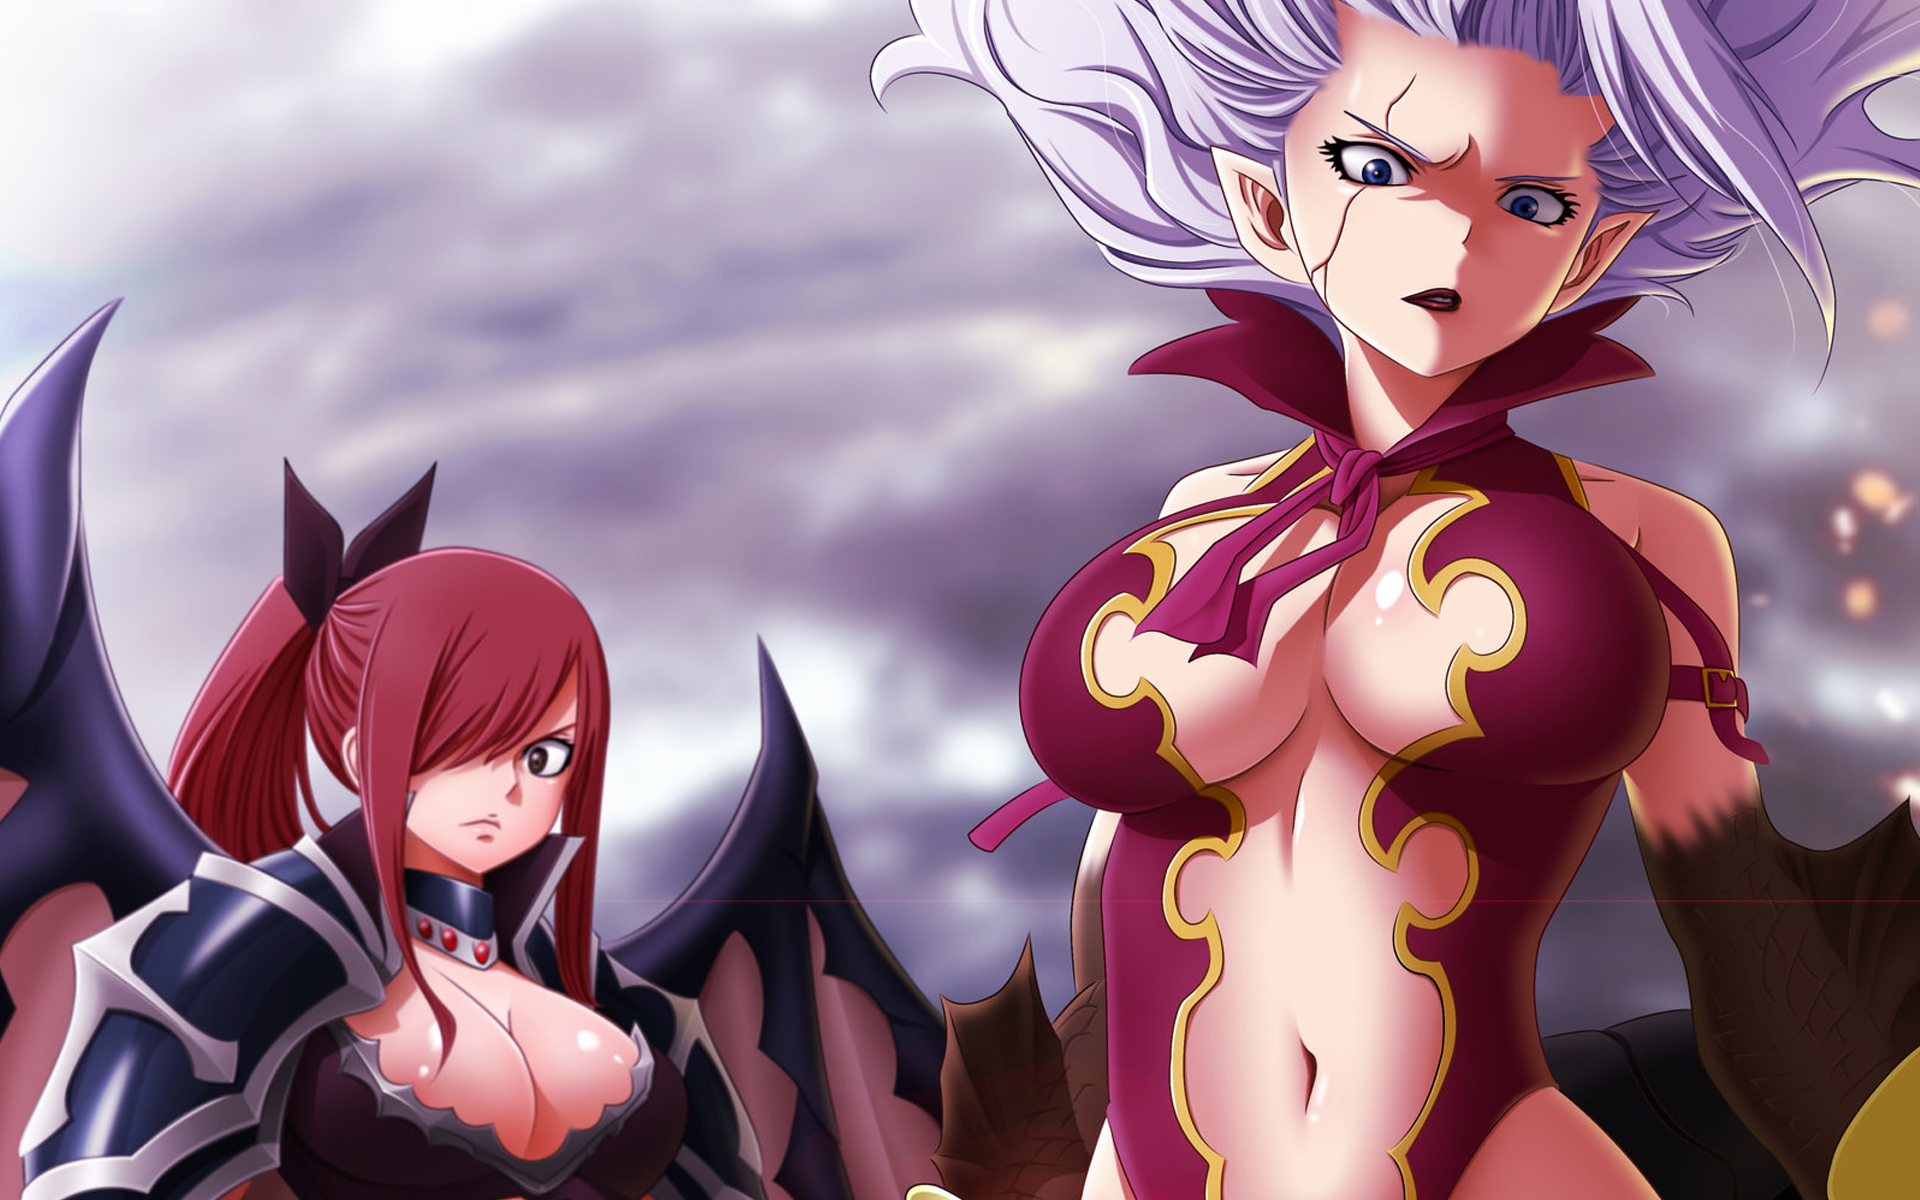 Erza And Mirajane 08 Hd Wallpaper Only the best hd background pictures. erza and mirajane 08 hd wallpaper